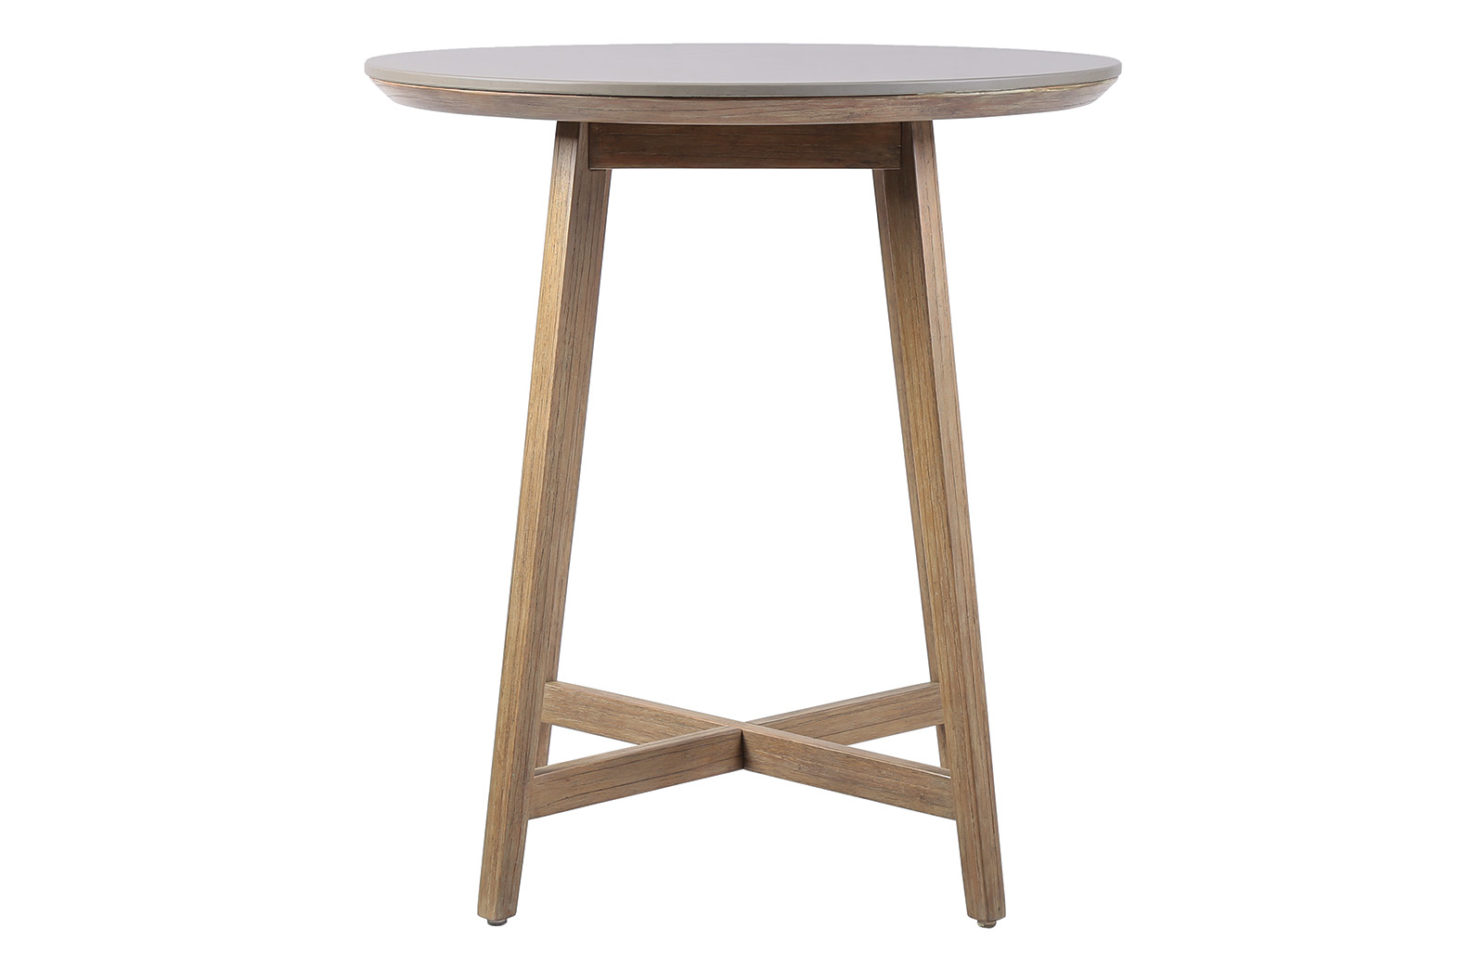 pioneer bistro table 504FT401P2 E 1 front 1